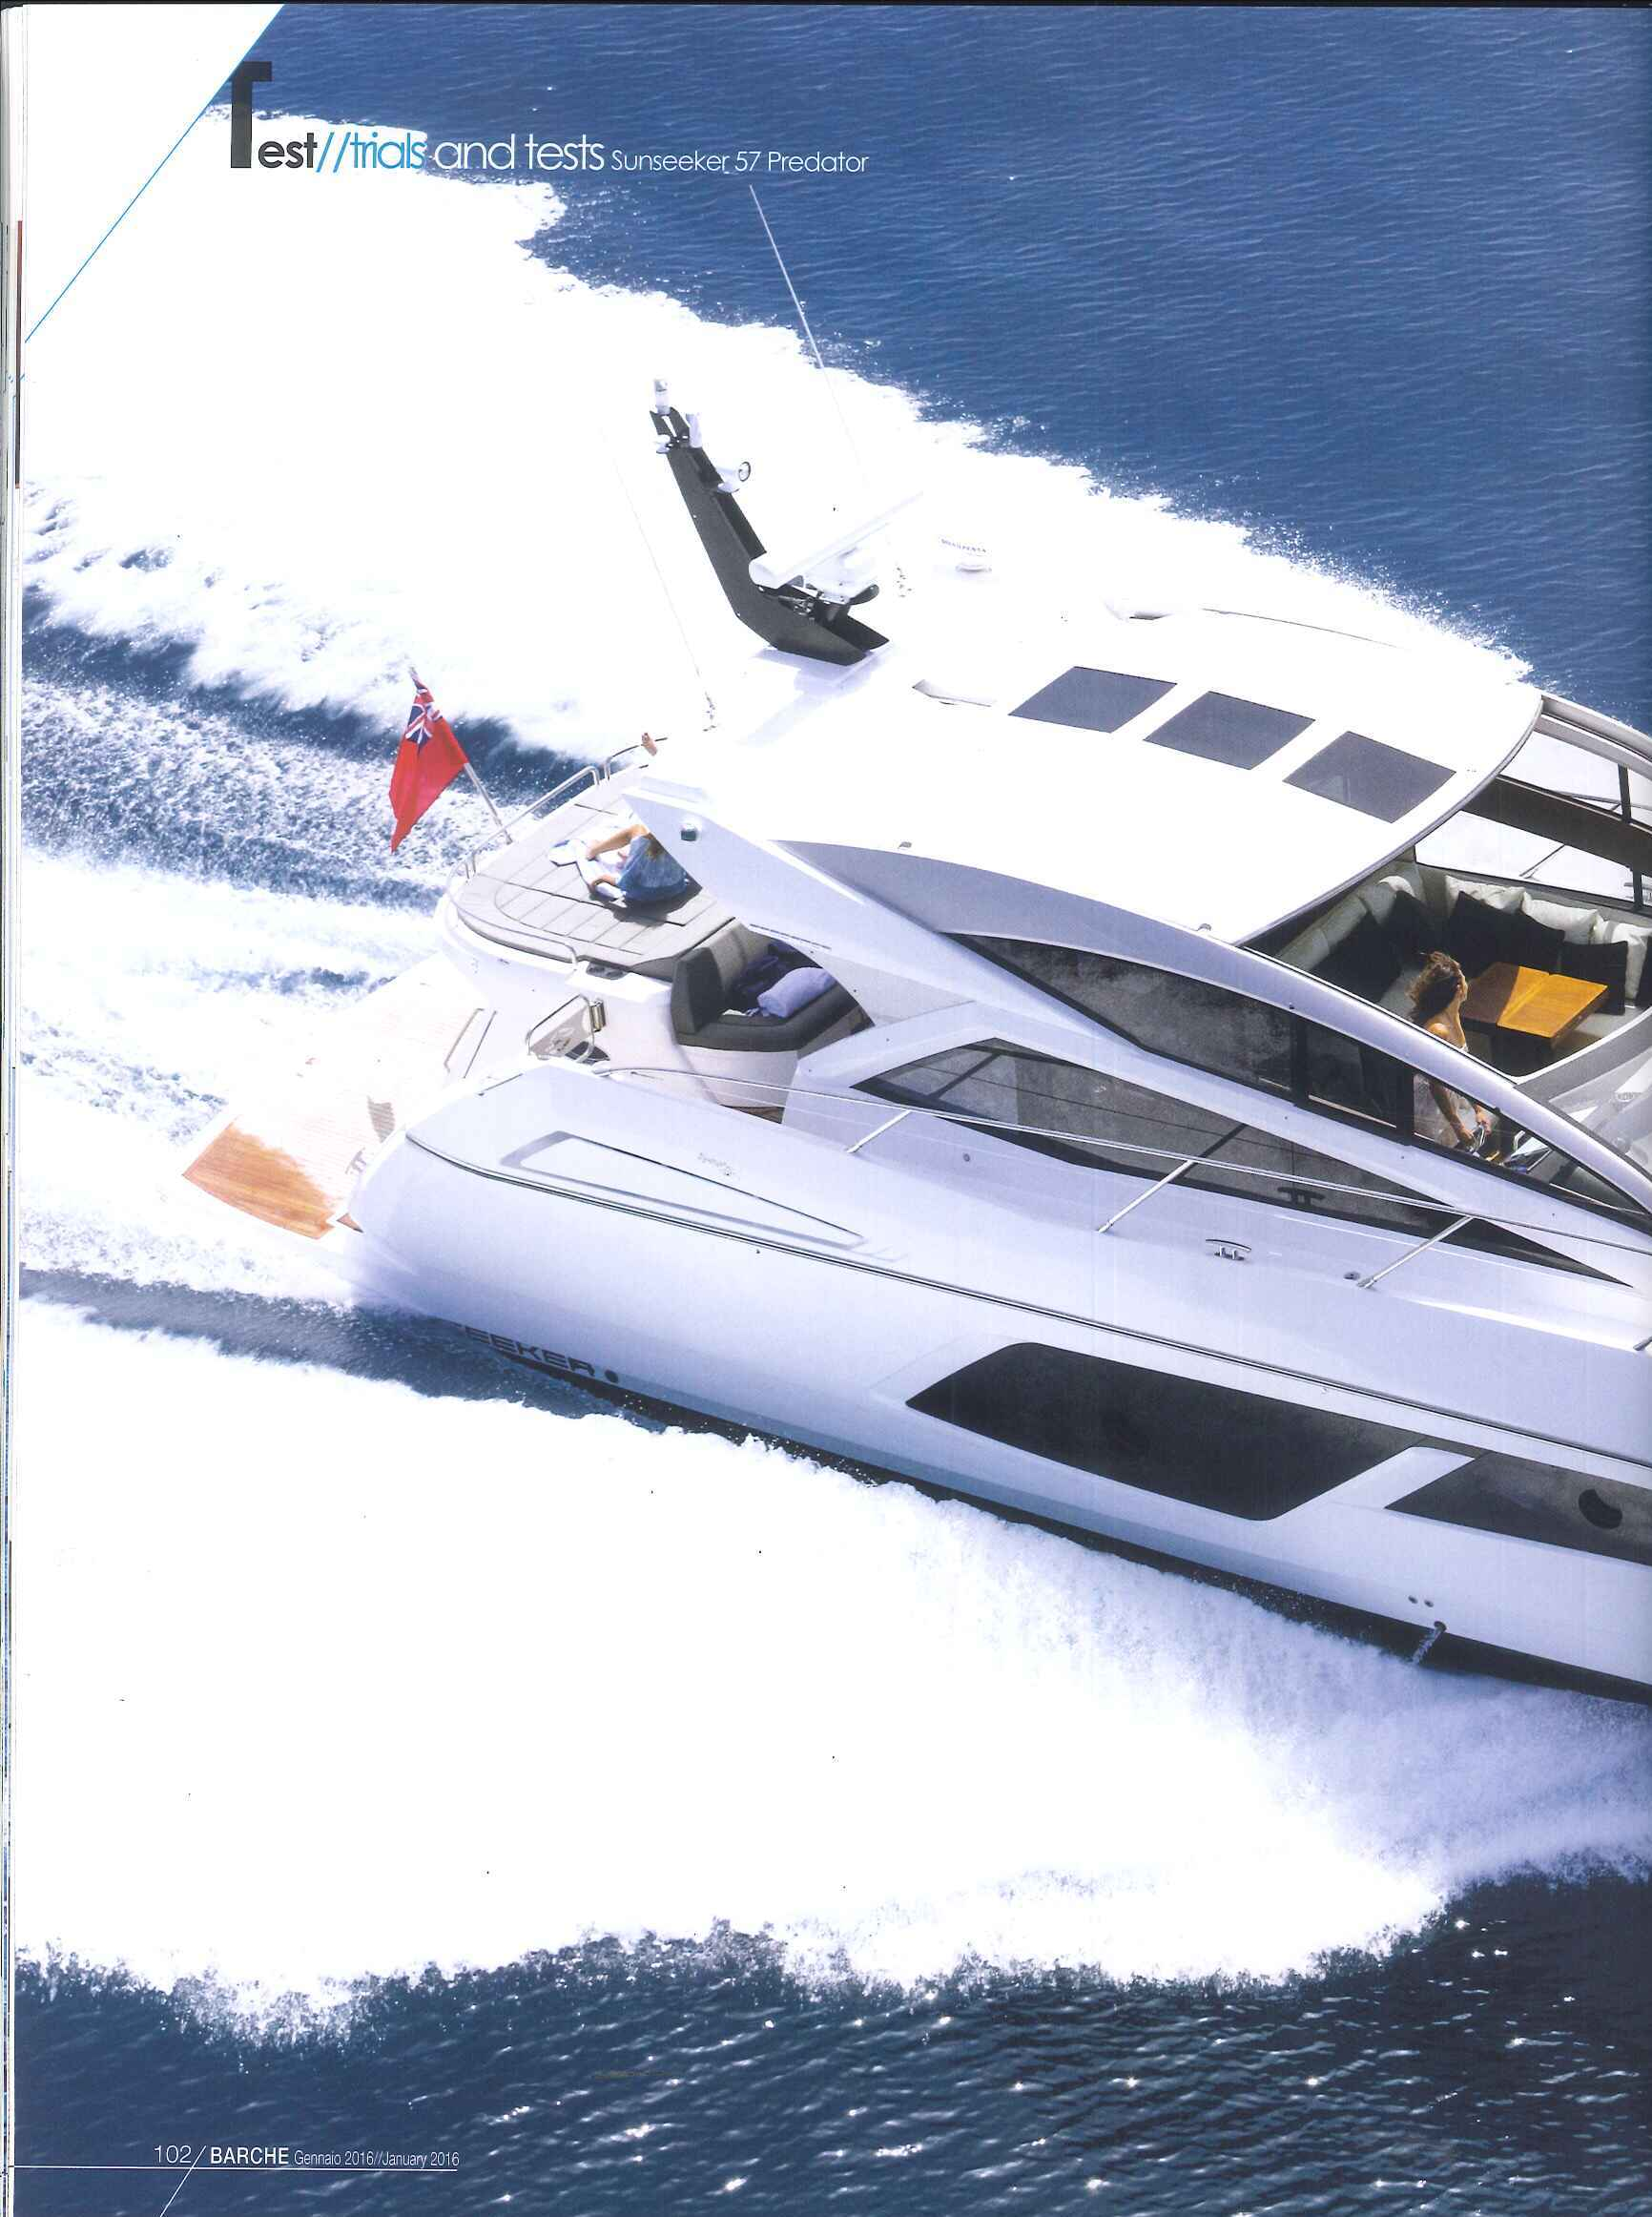 2016 01 PRESS SUNSEEKER 57 PREDATOR BARCHE (1).jpg